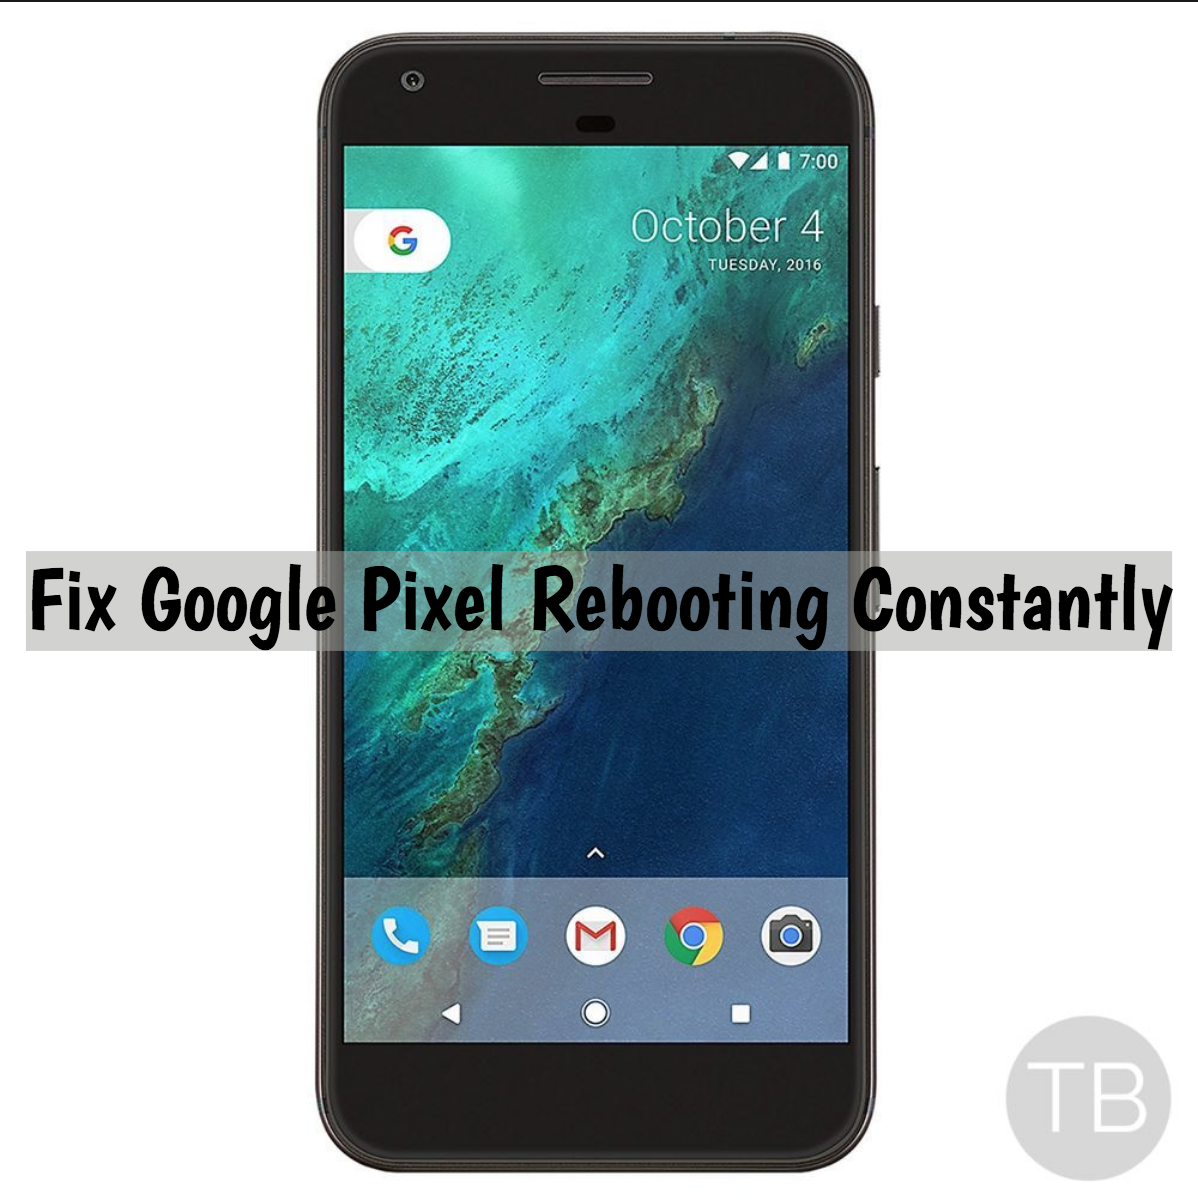 Fix Google Pixel Rebooting Constantly